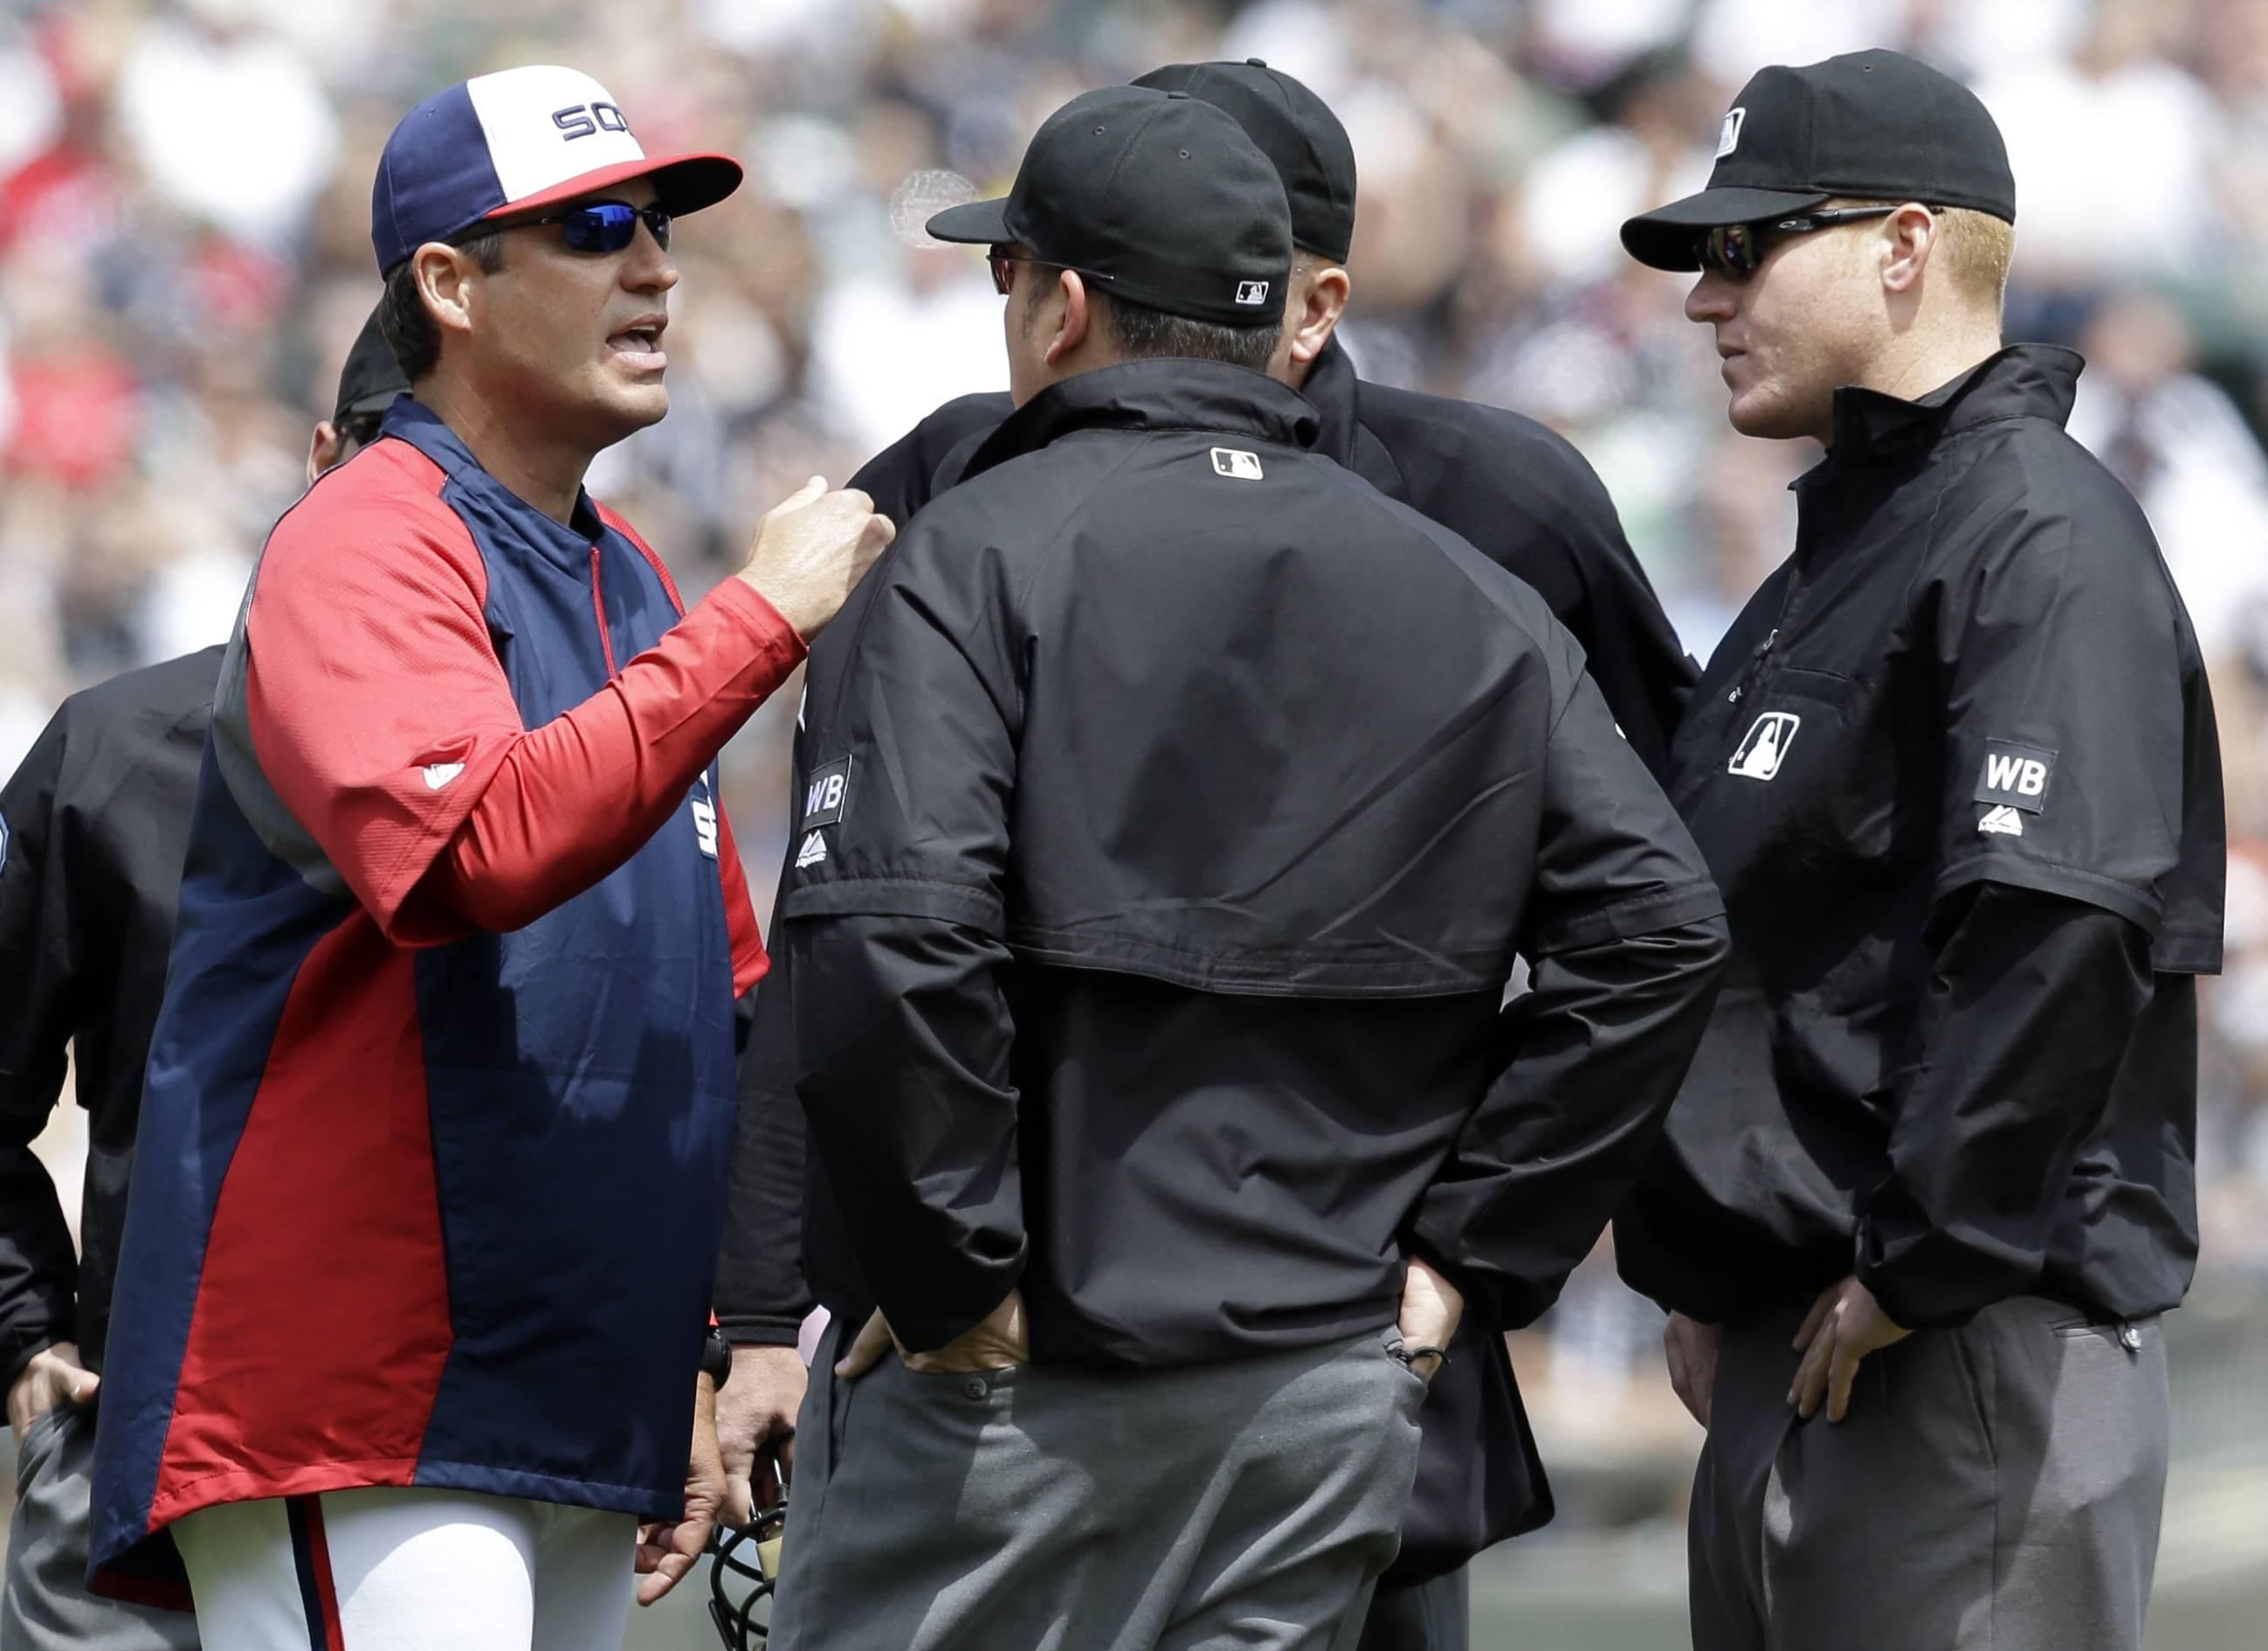 Chicago White Sox manager Robin Ventura, left, argues with umpires during the second inning of a baseball game against the New York Yankees in Chicago on Saturday, May 24, 2014. (AP Photo/Nam Y. Huh)